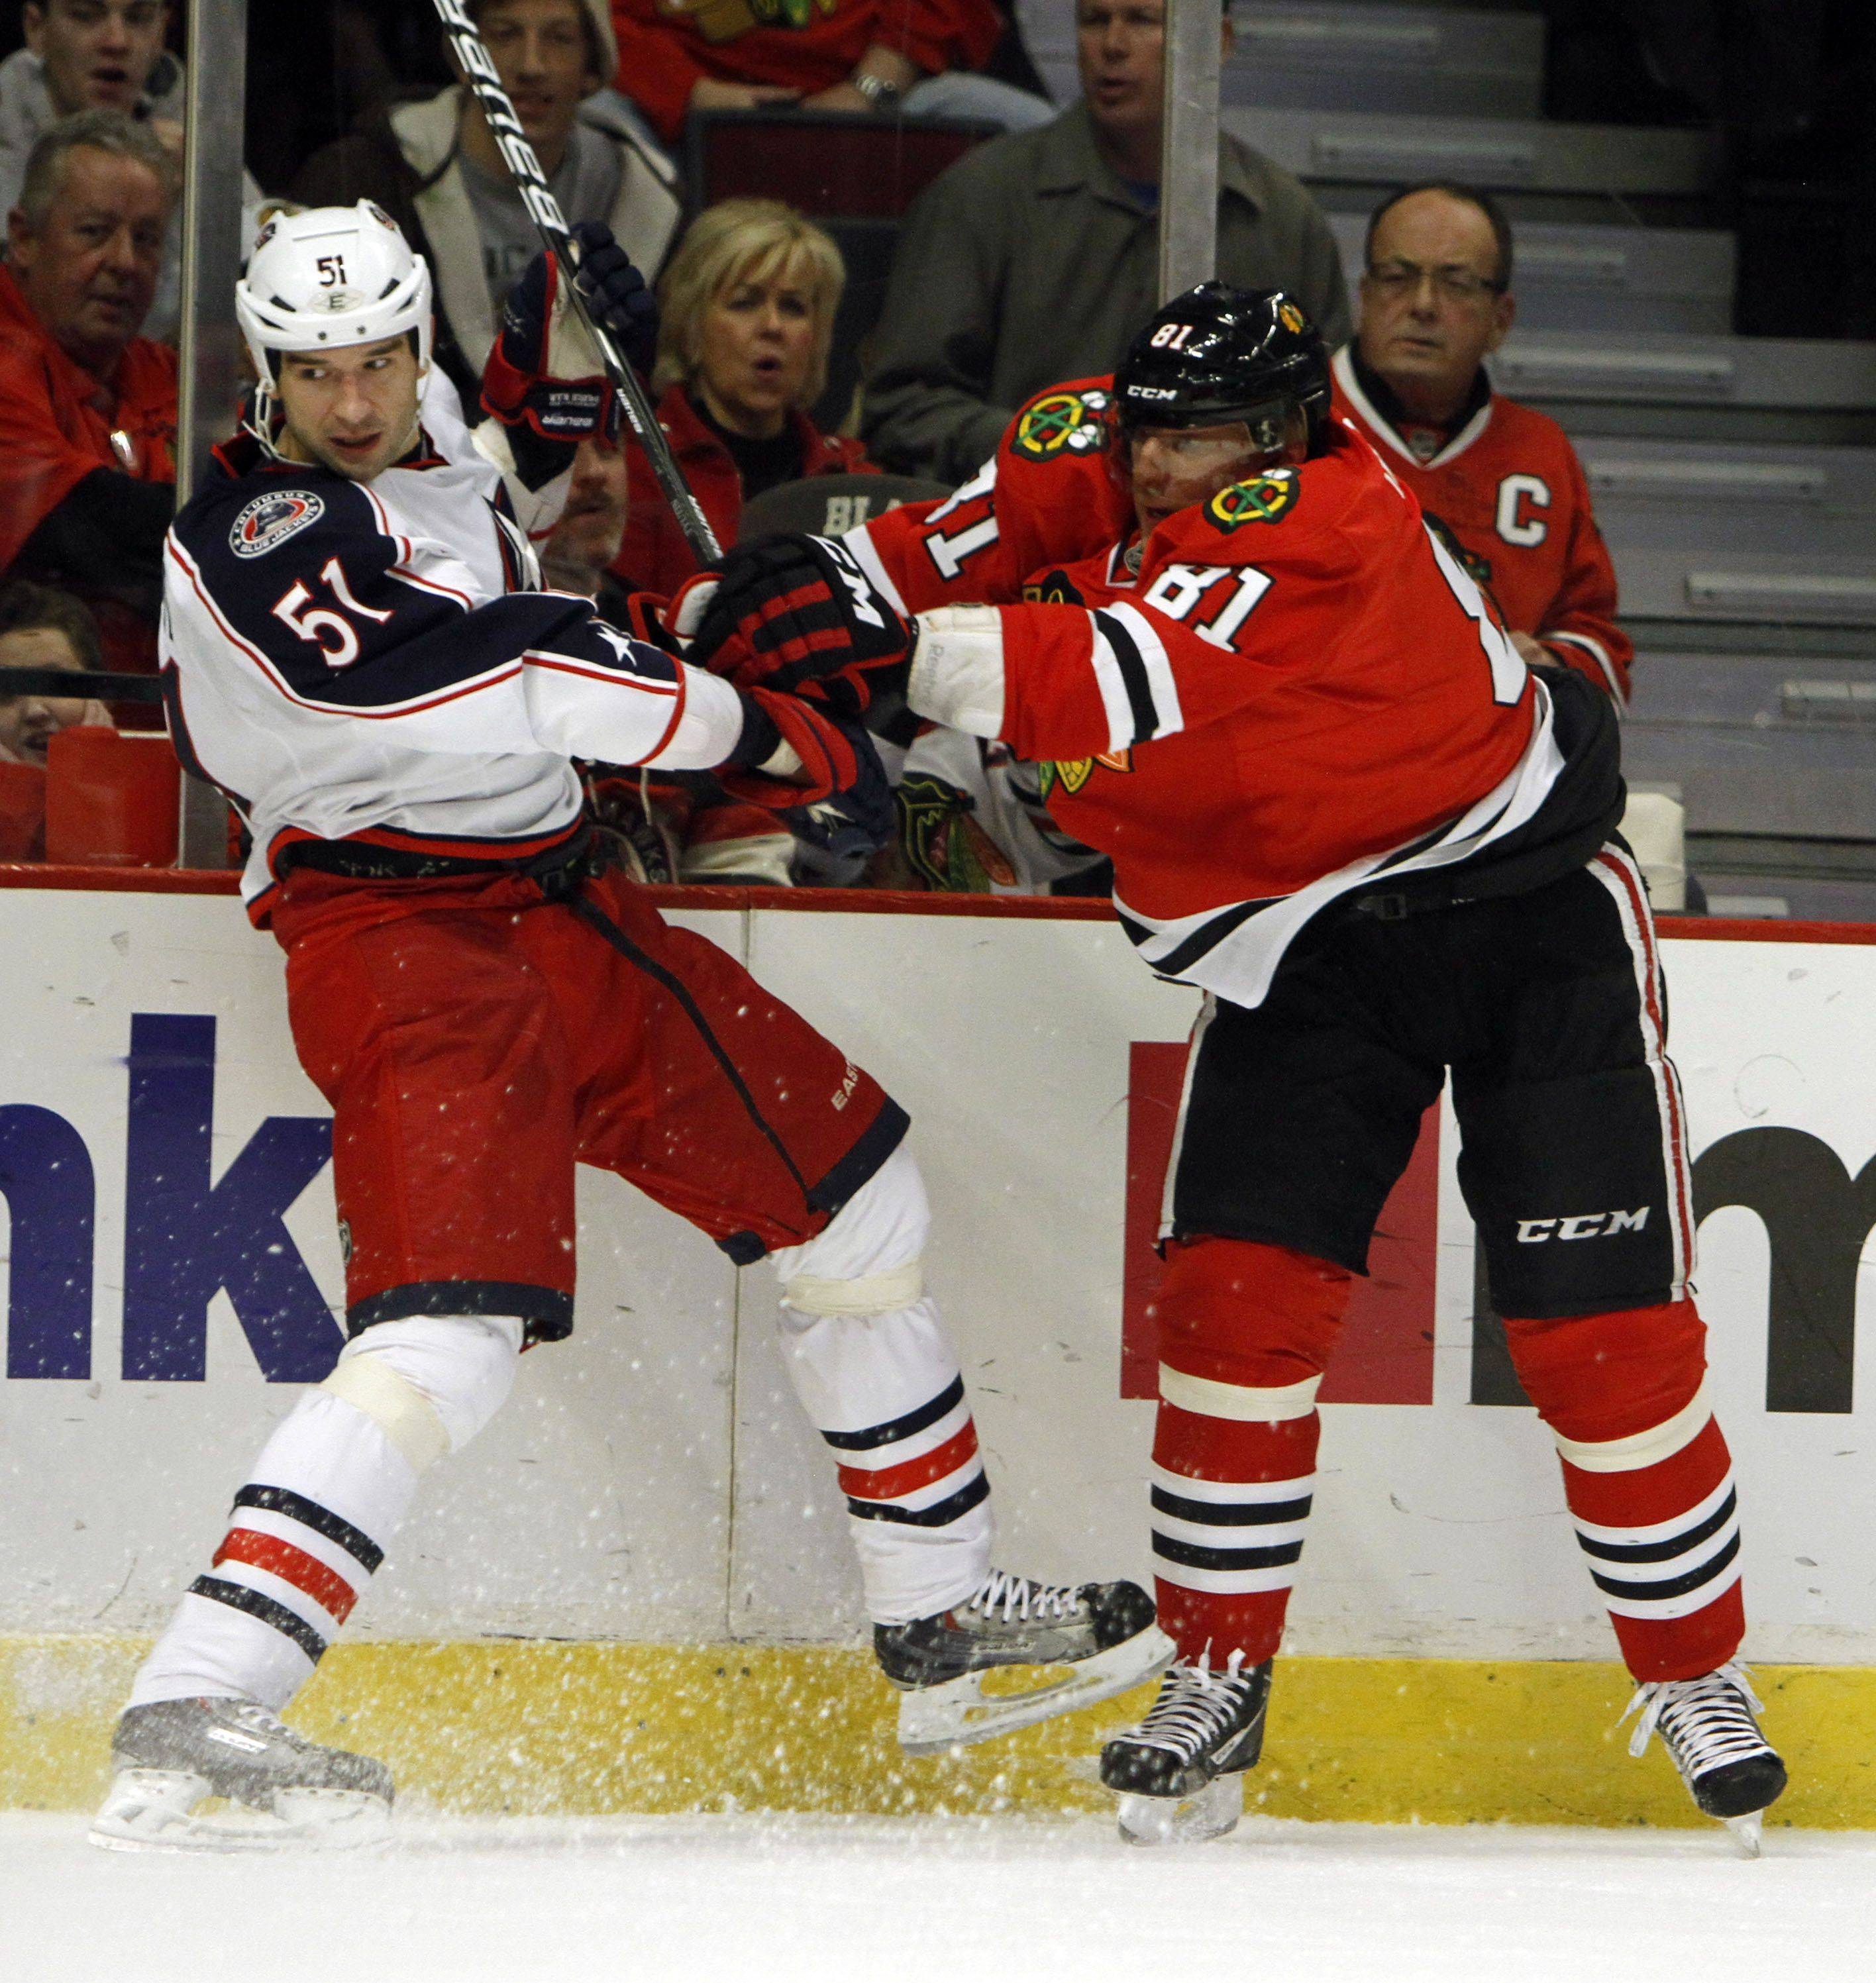 Chicago Blackhawks right wing Marian Hossa checks Columbus Blue Jackets defenseman Fedor Tyutin during their game Monday night at the United Center in Chicago.